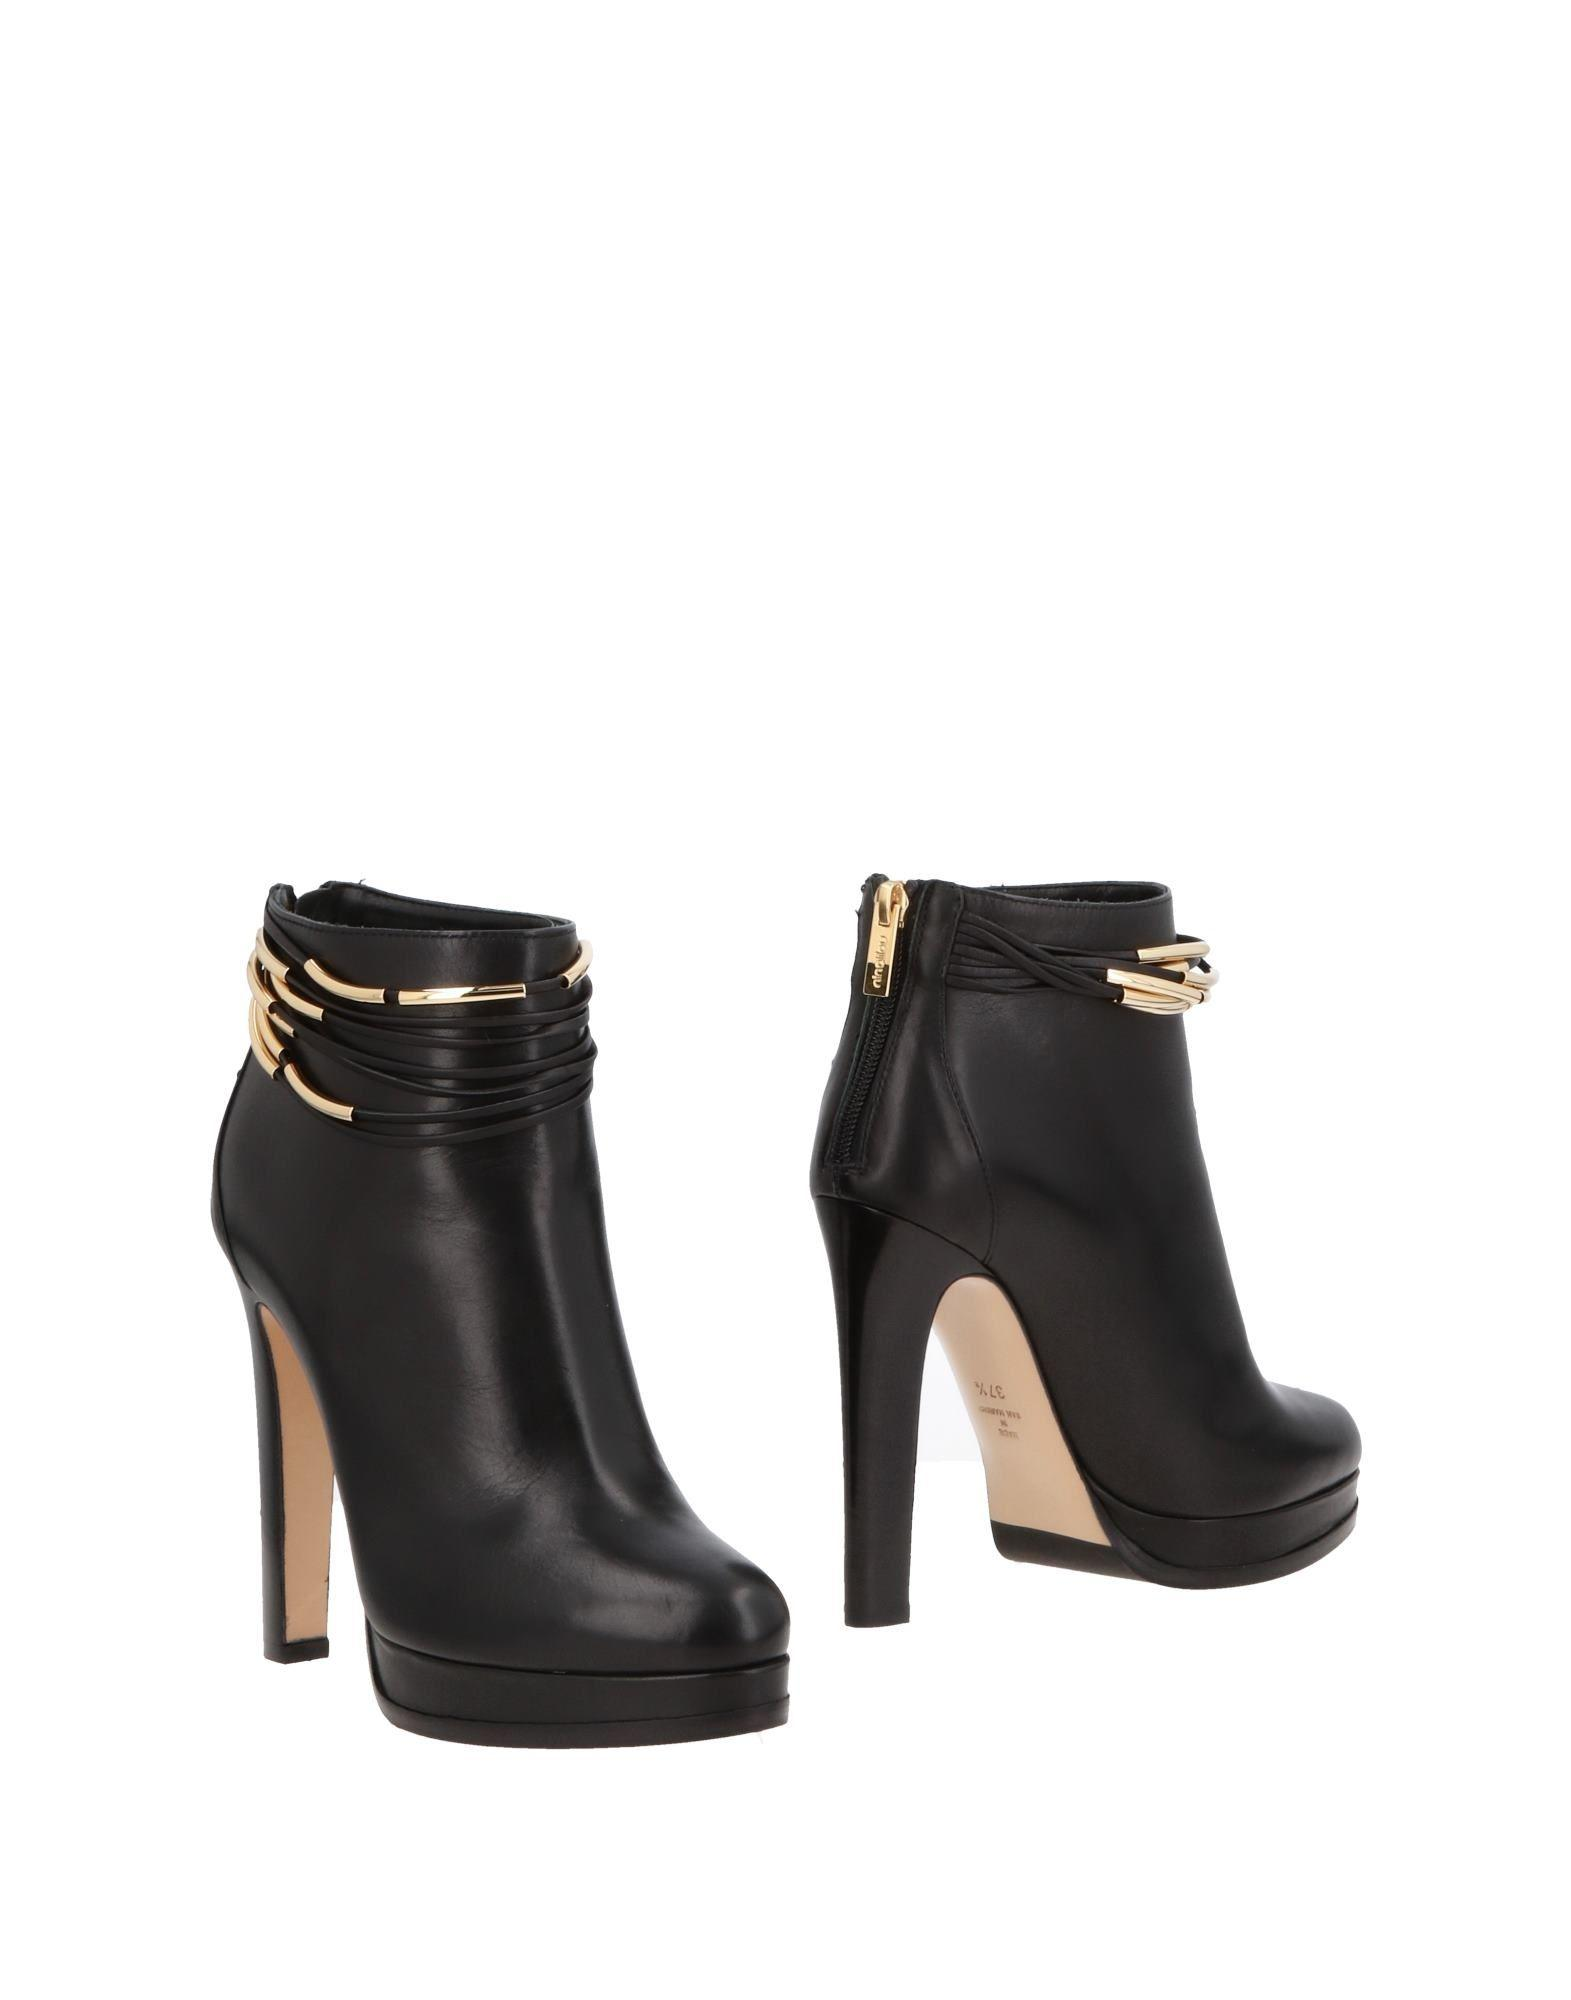 NINALILOU Ankle boots perfect cheap online clearance 2014 new factory outlet sale online discount footlocker pictures outlet countdown package PZqmMC8